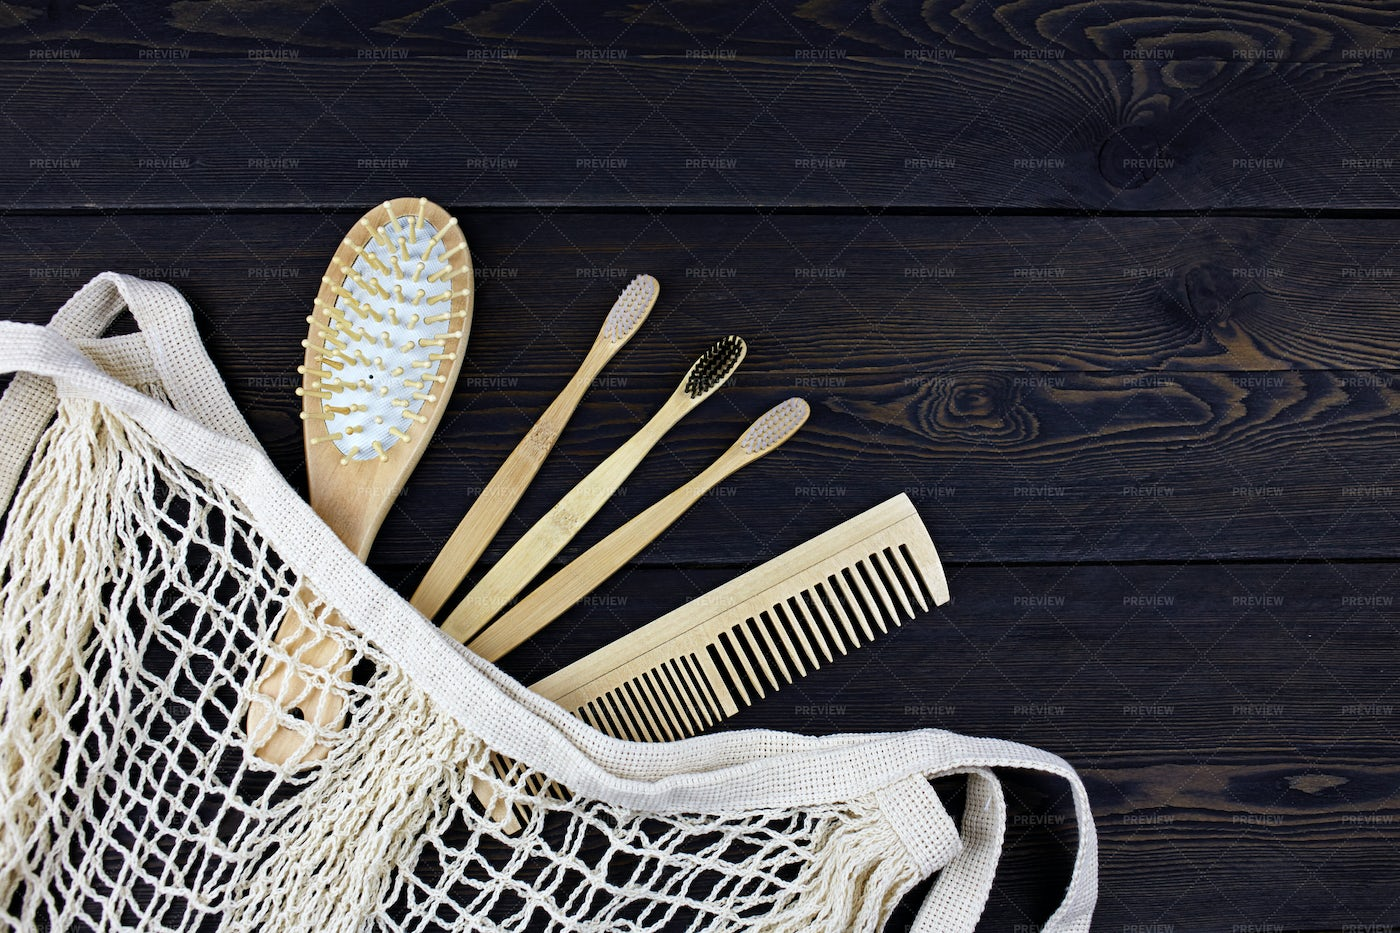 Eco Wood Comb And Bamboo Toothbrushes: Stock Photos